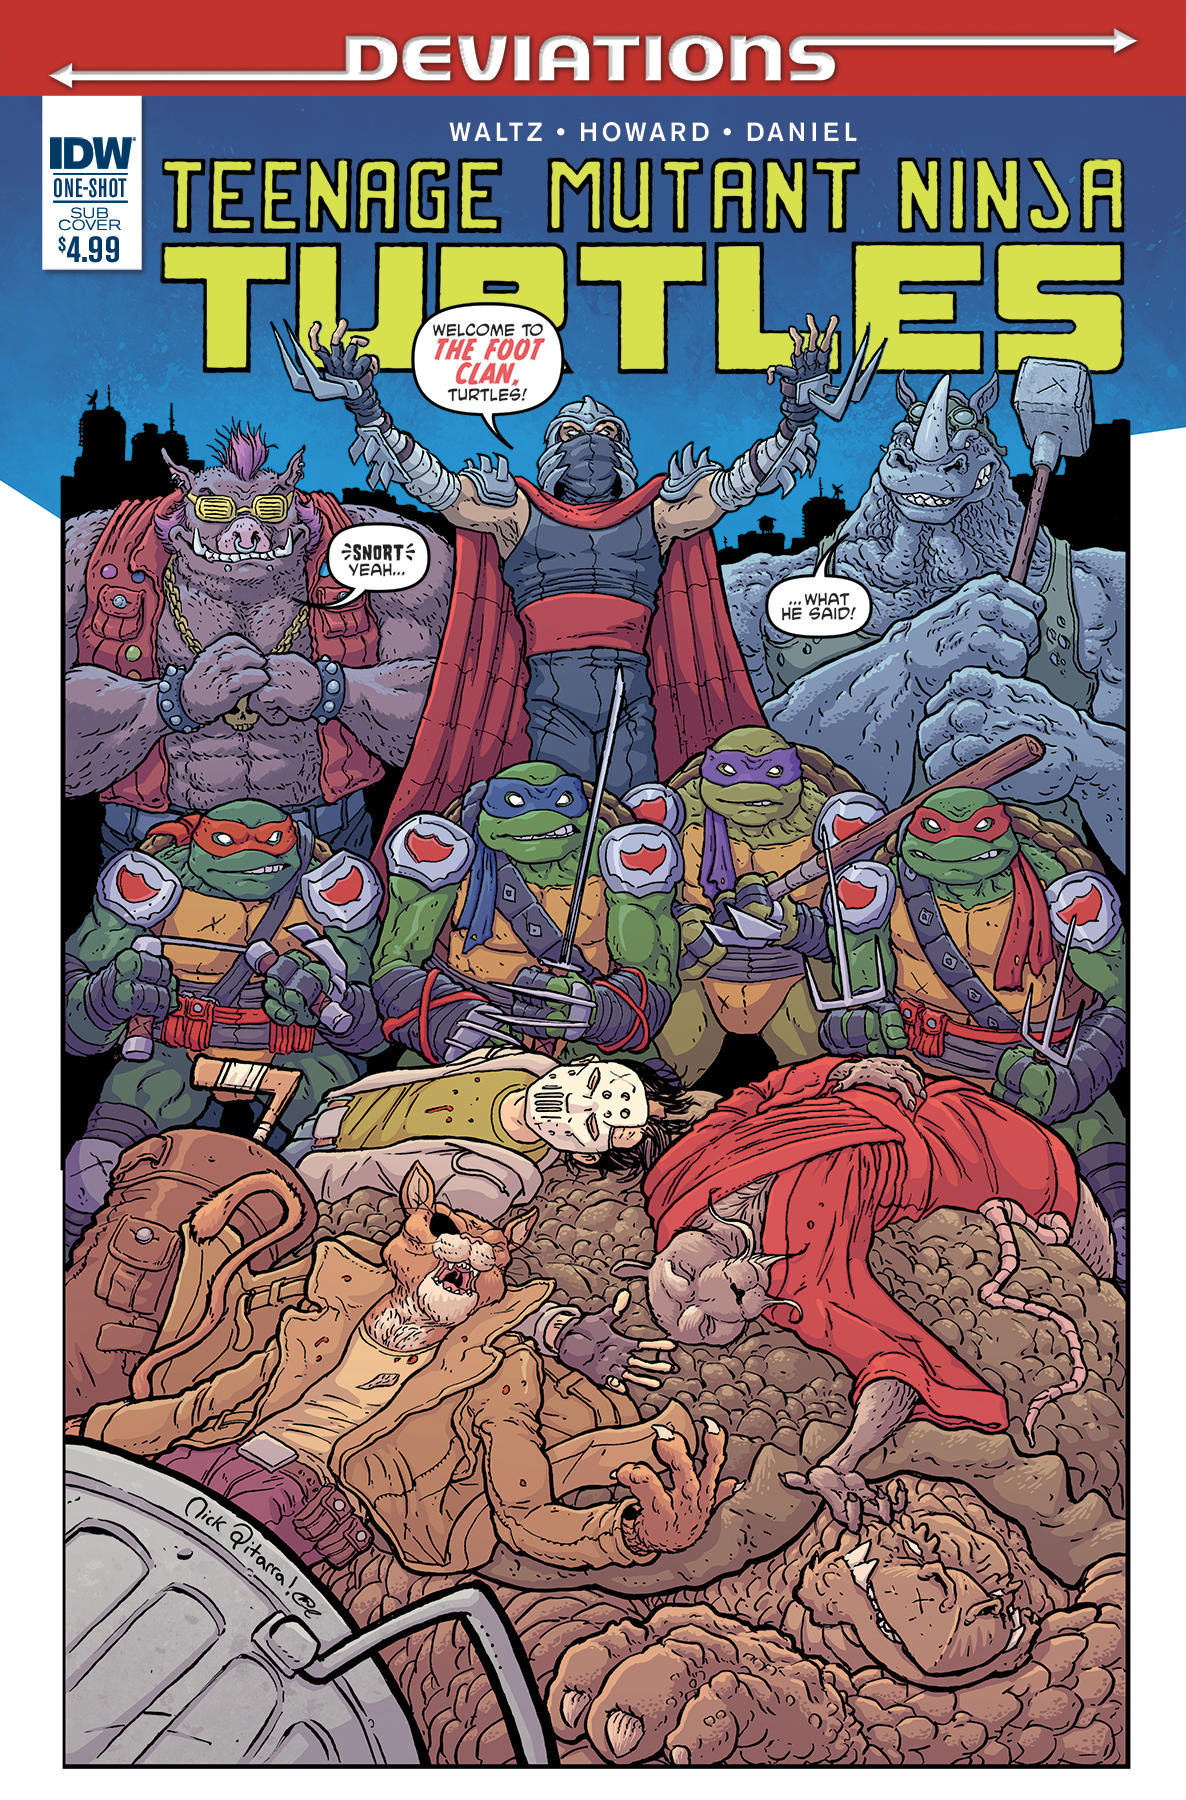 Teenage Mutant Ninja Turtles Deviations Cover